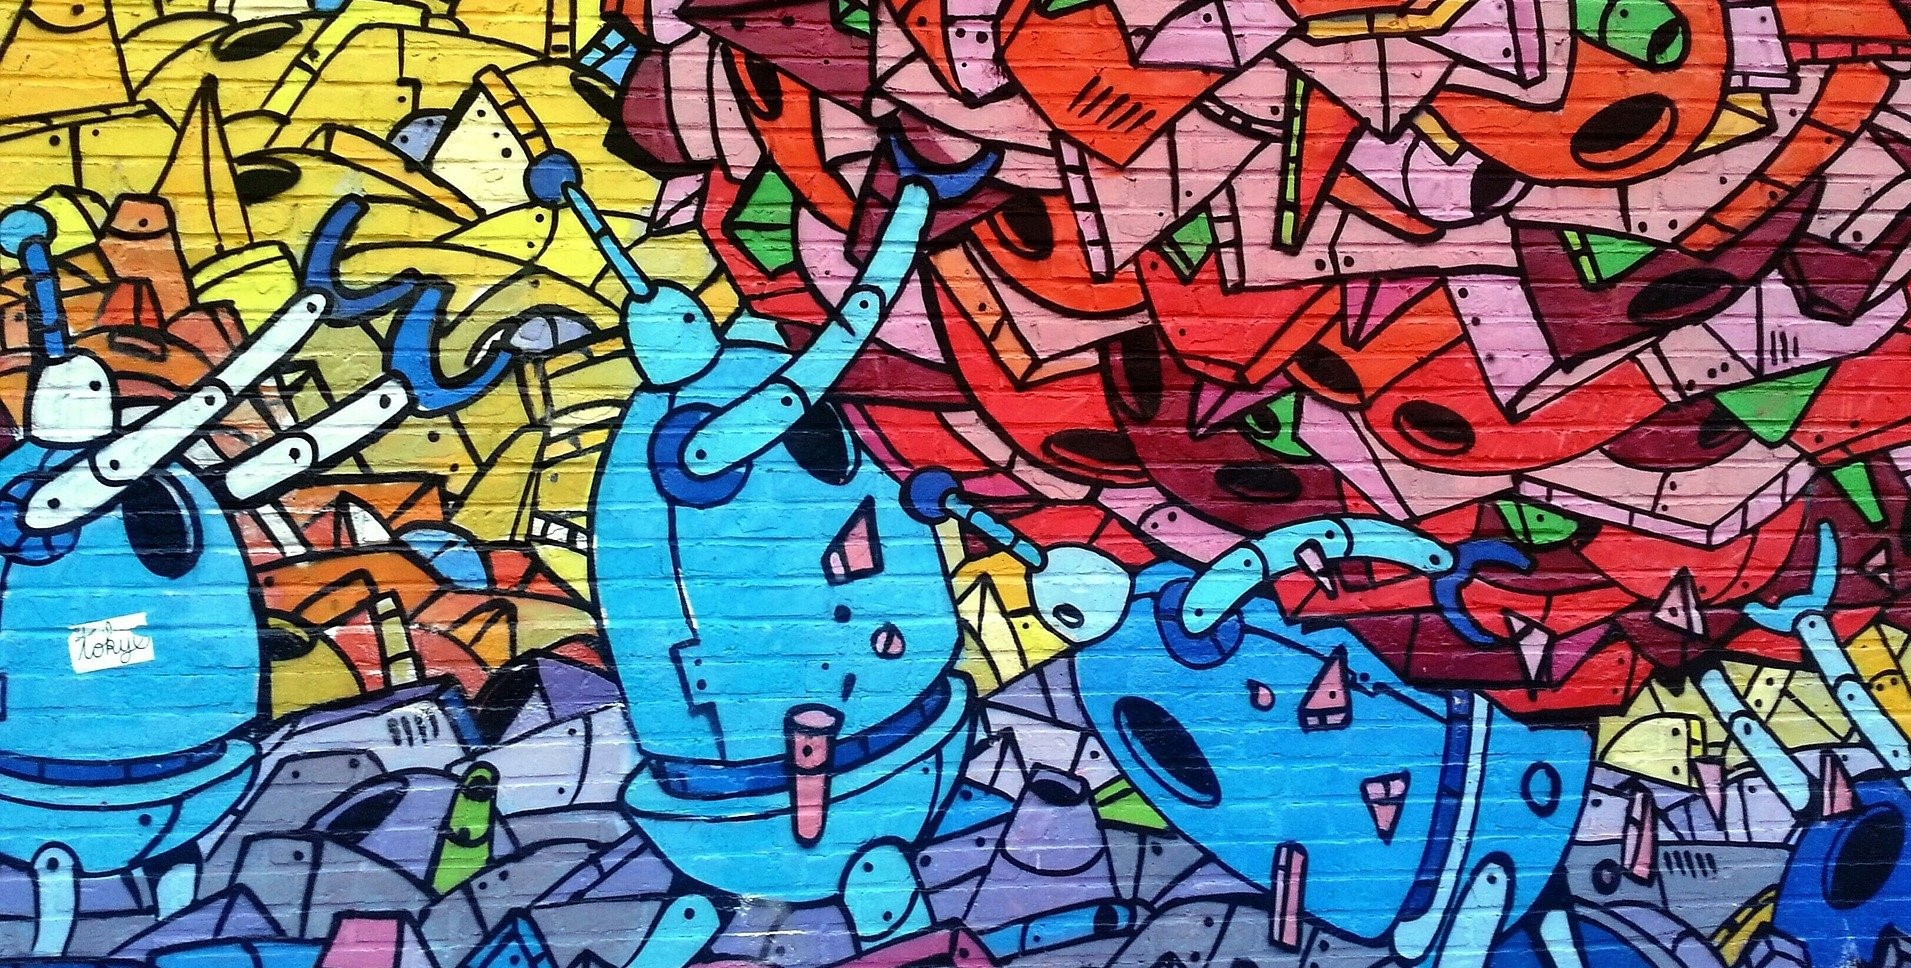 Street art mural with robots and colours